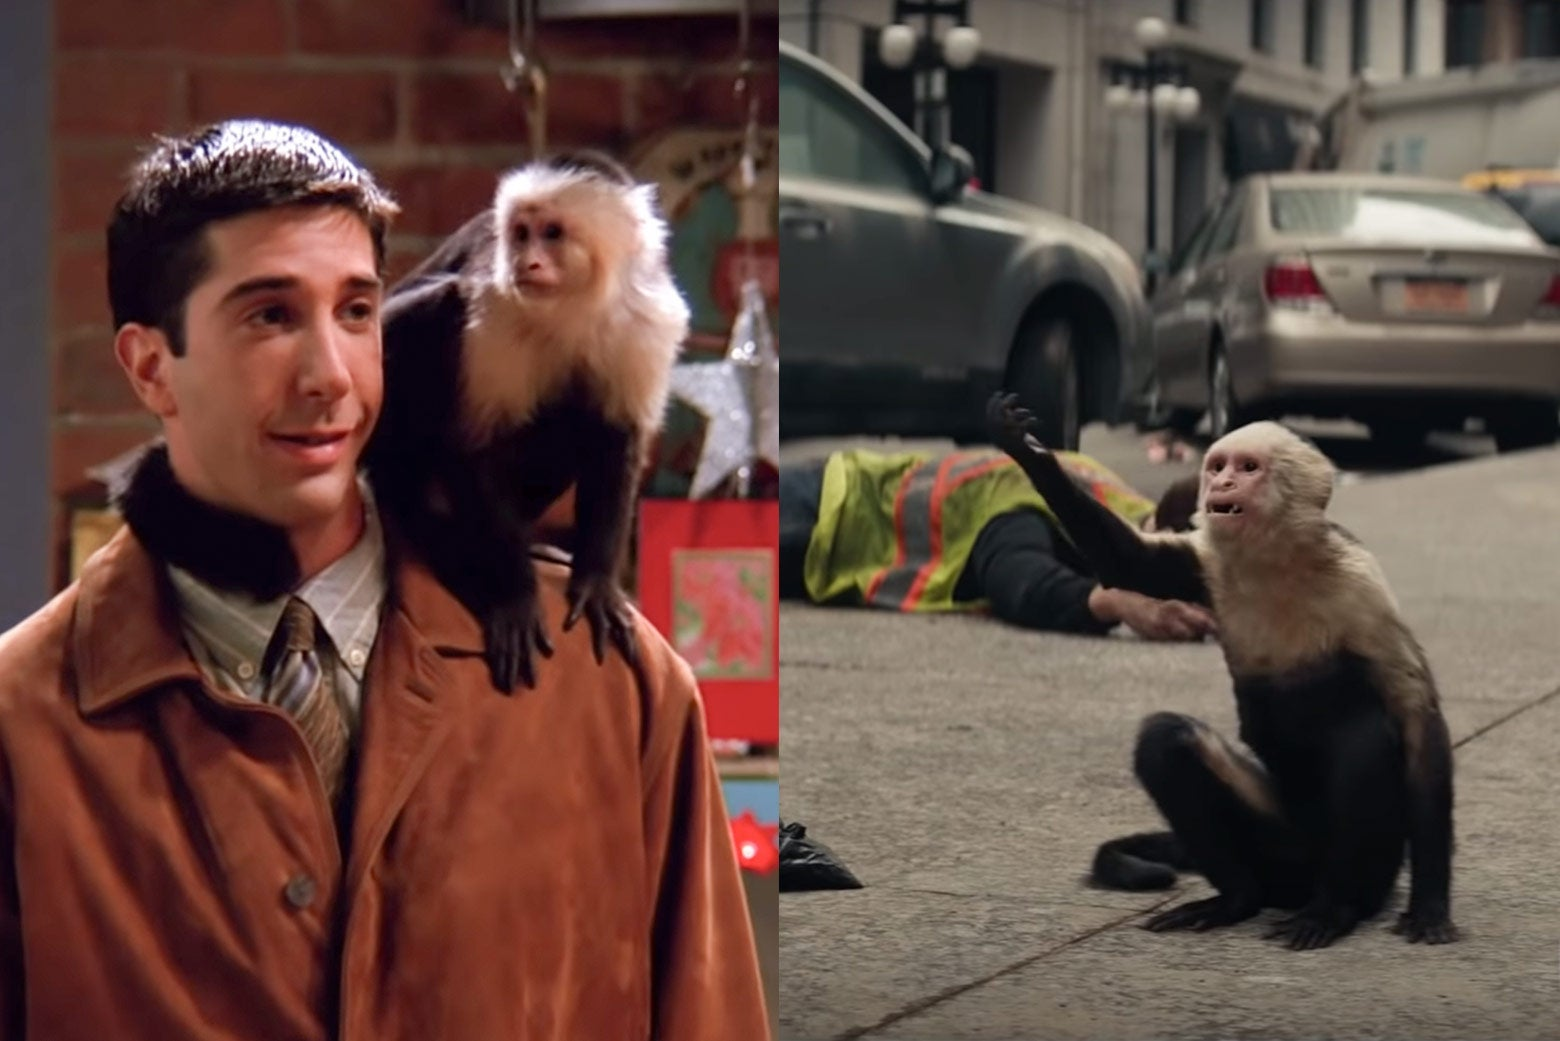 On the left, Ross (David Schwimmer) with Marcel on his shoulder. On the right, Ampersand in Y: The Last Man.